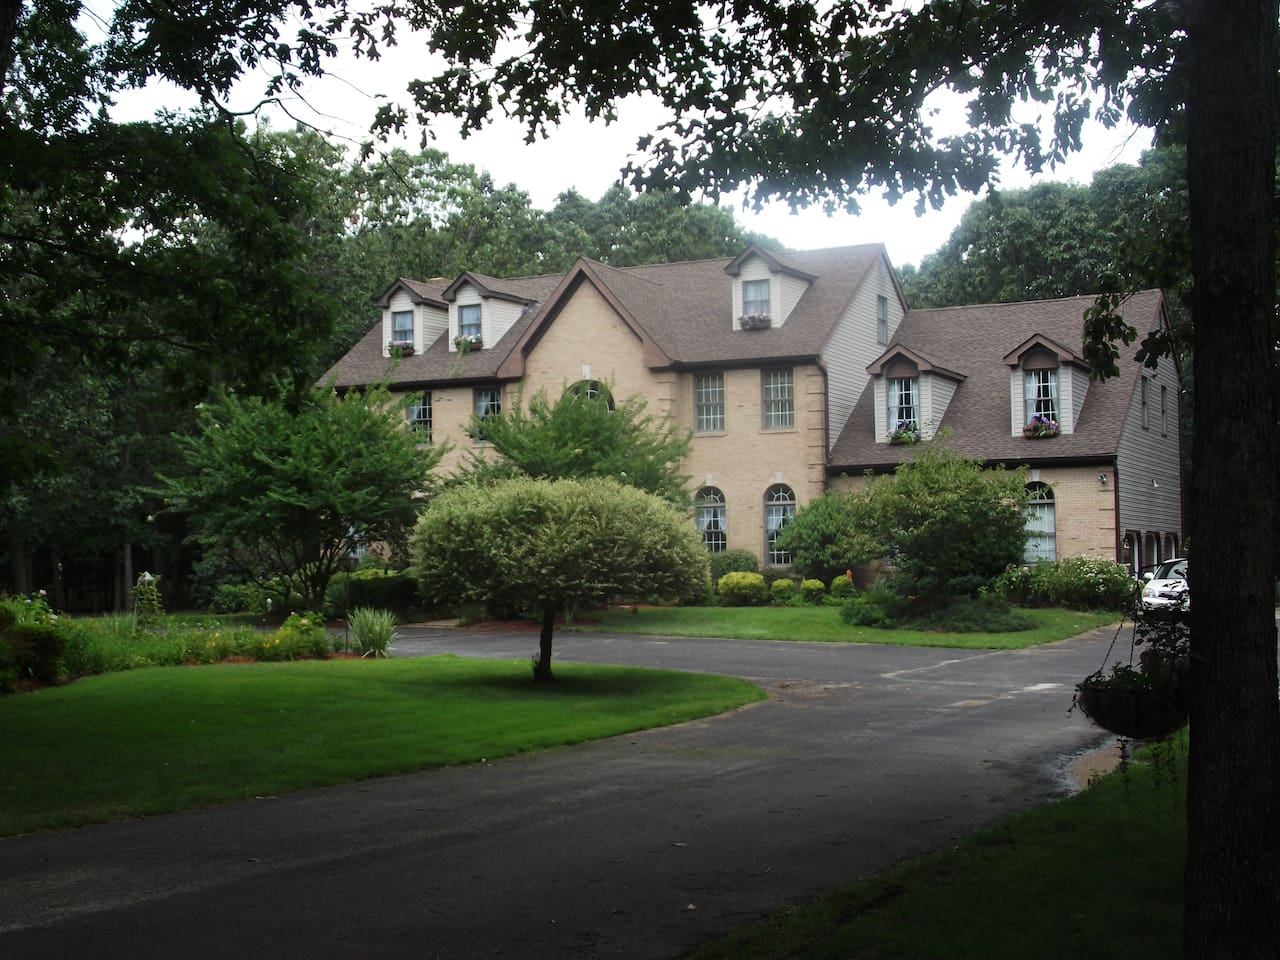 Large home on 28 acres.  Manicured lawns and park like setting.